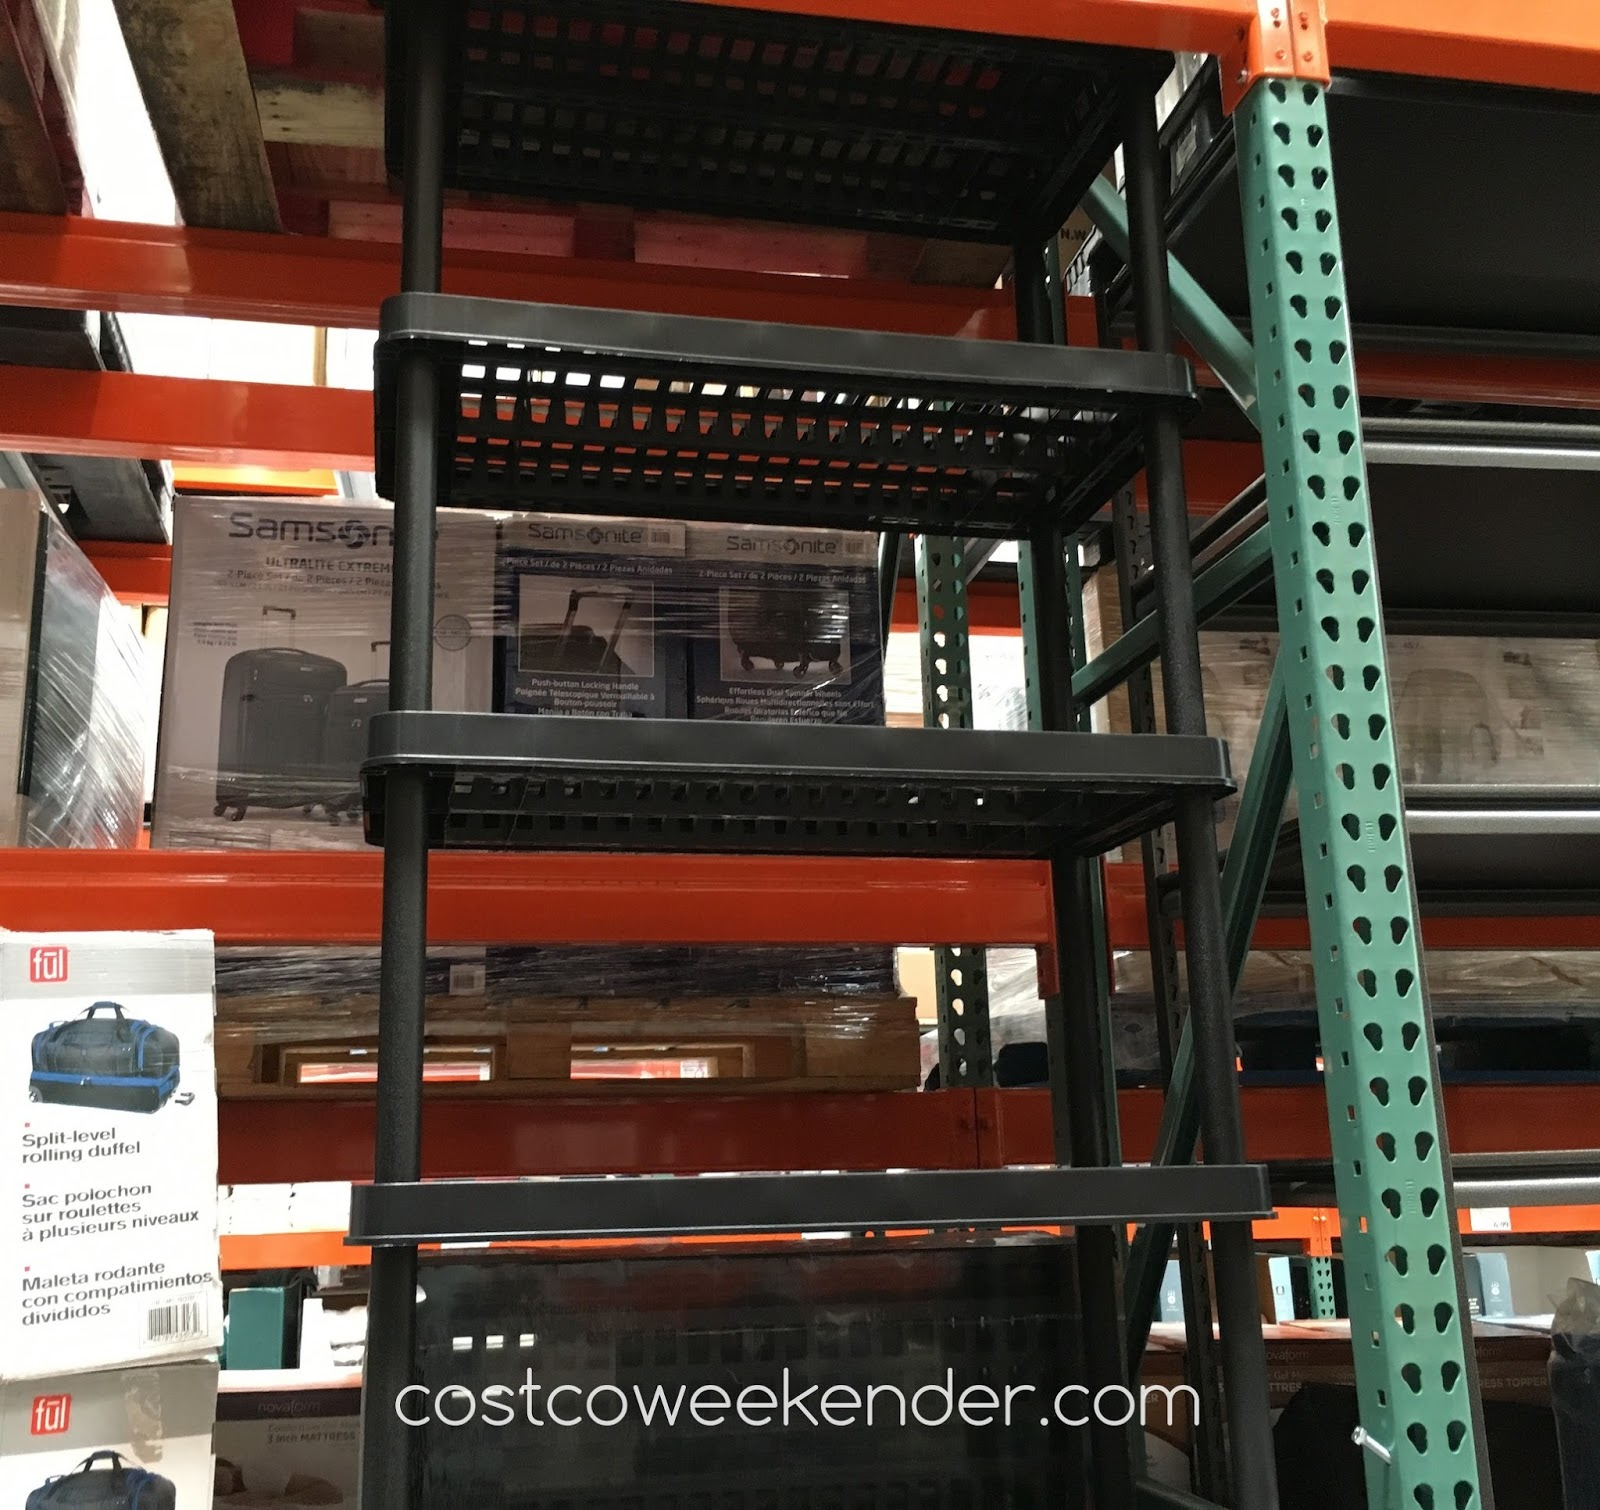 June 2016 | Costco Weekender